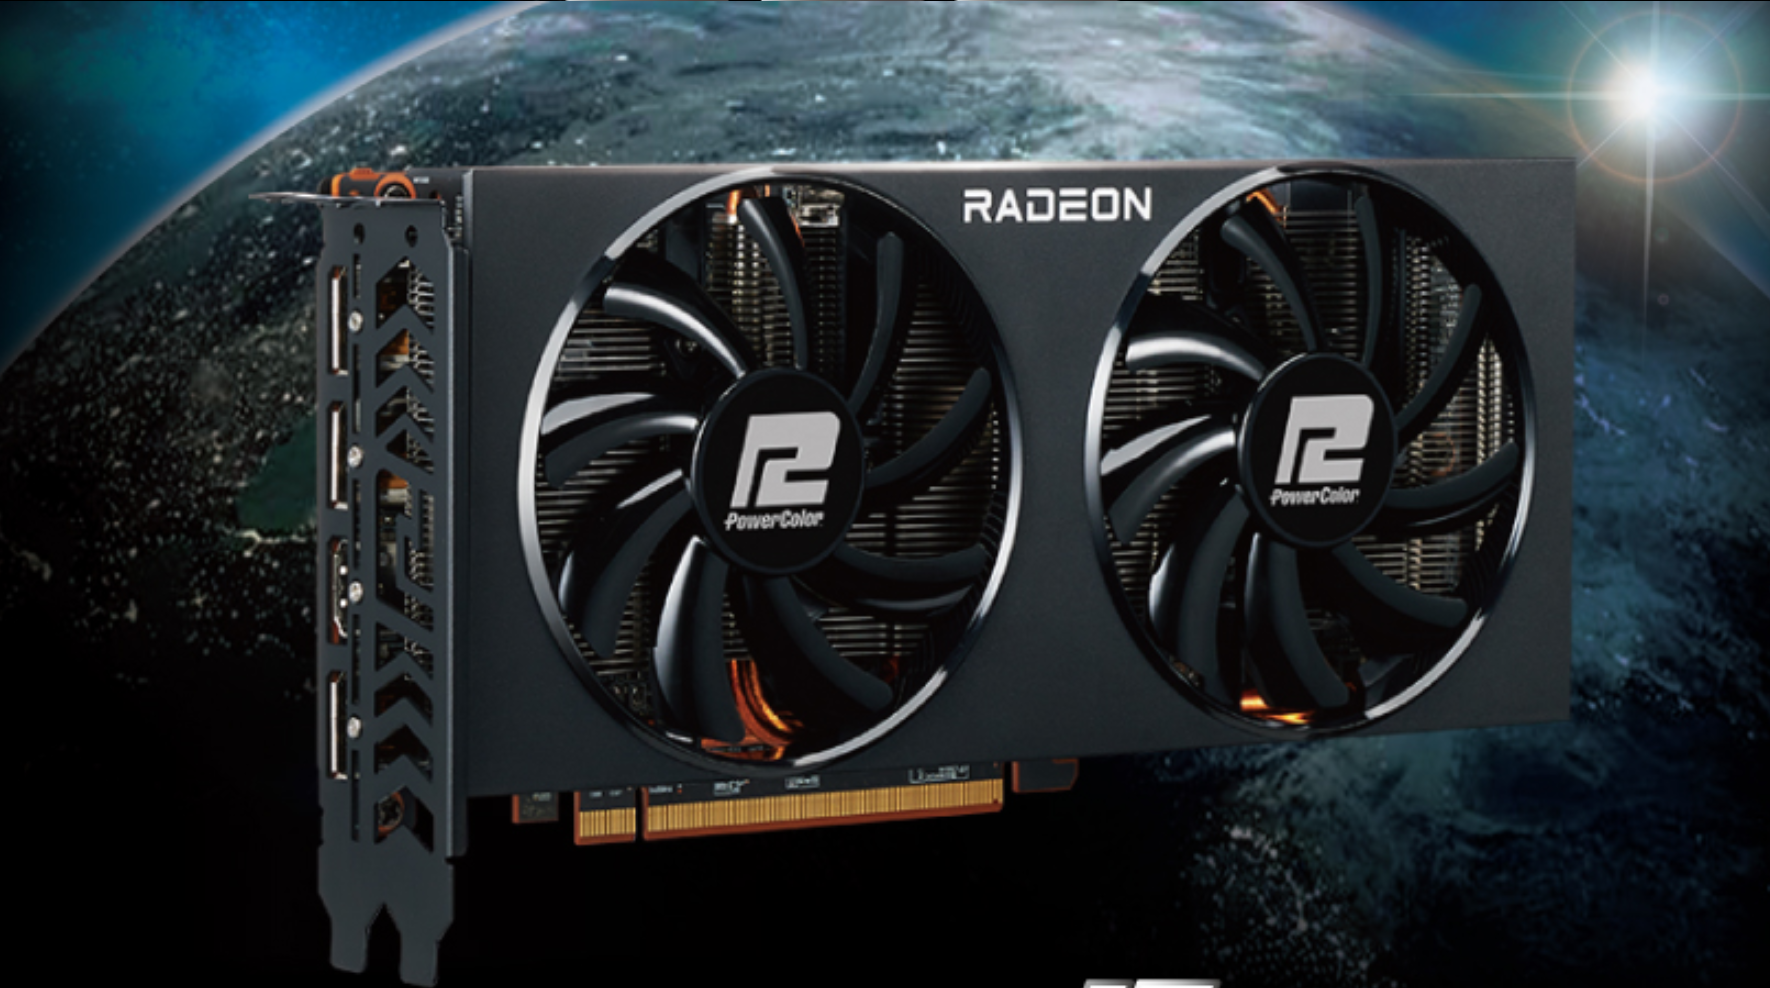 PowerColor Mengonfirmasi AMD Radeon RX 6700 Graphics Card Dengan 6 GB GDDR6 Memory